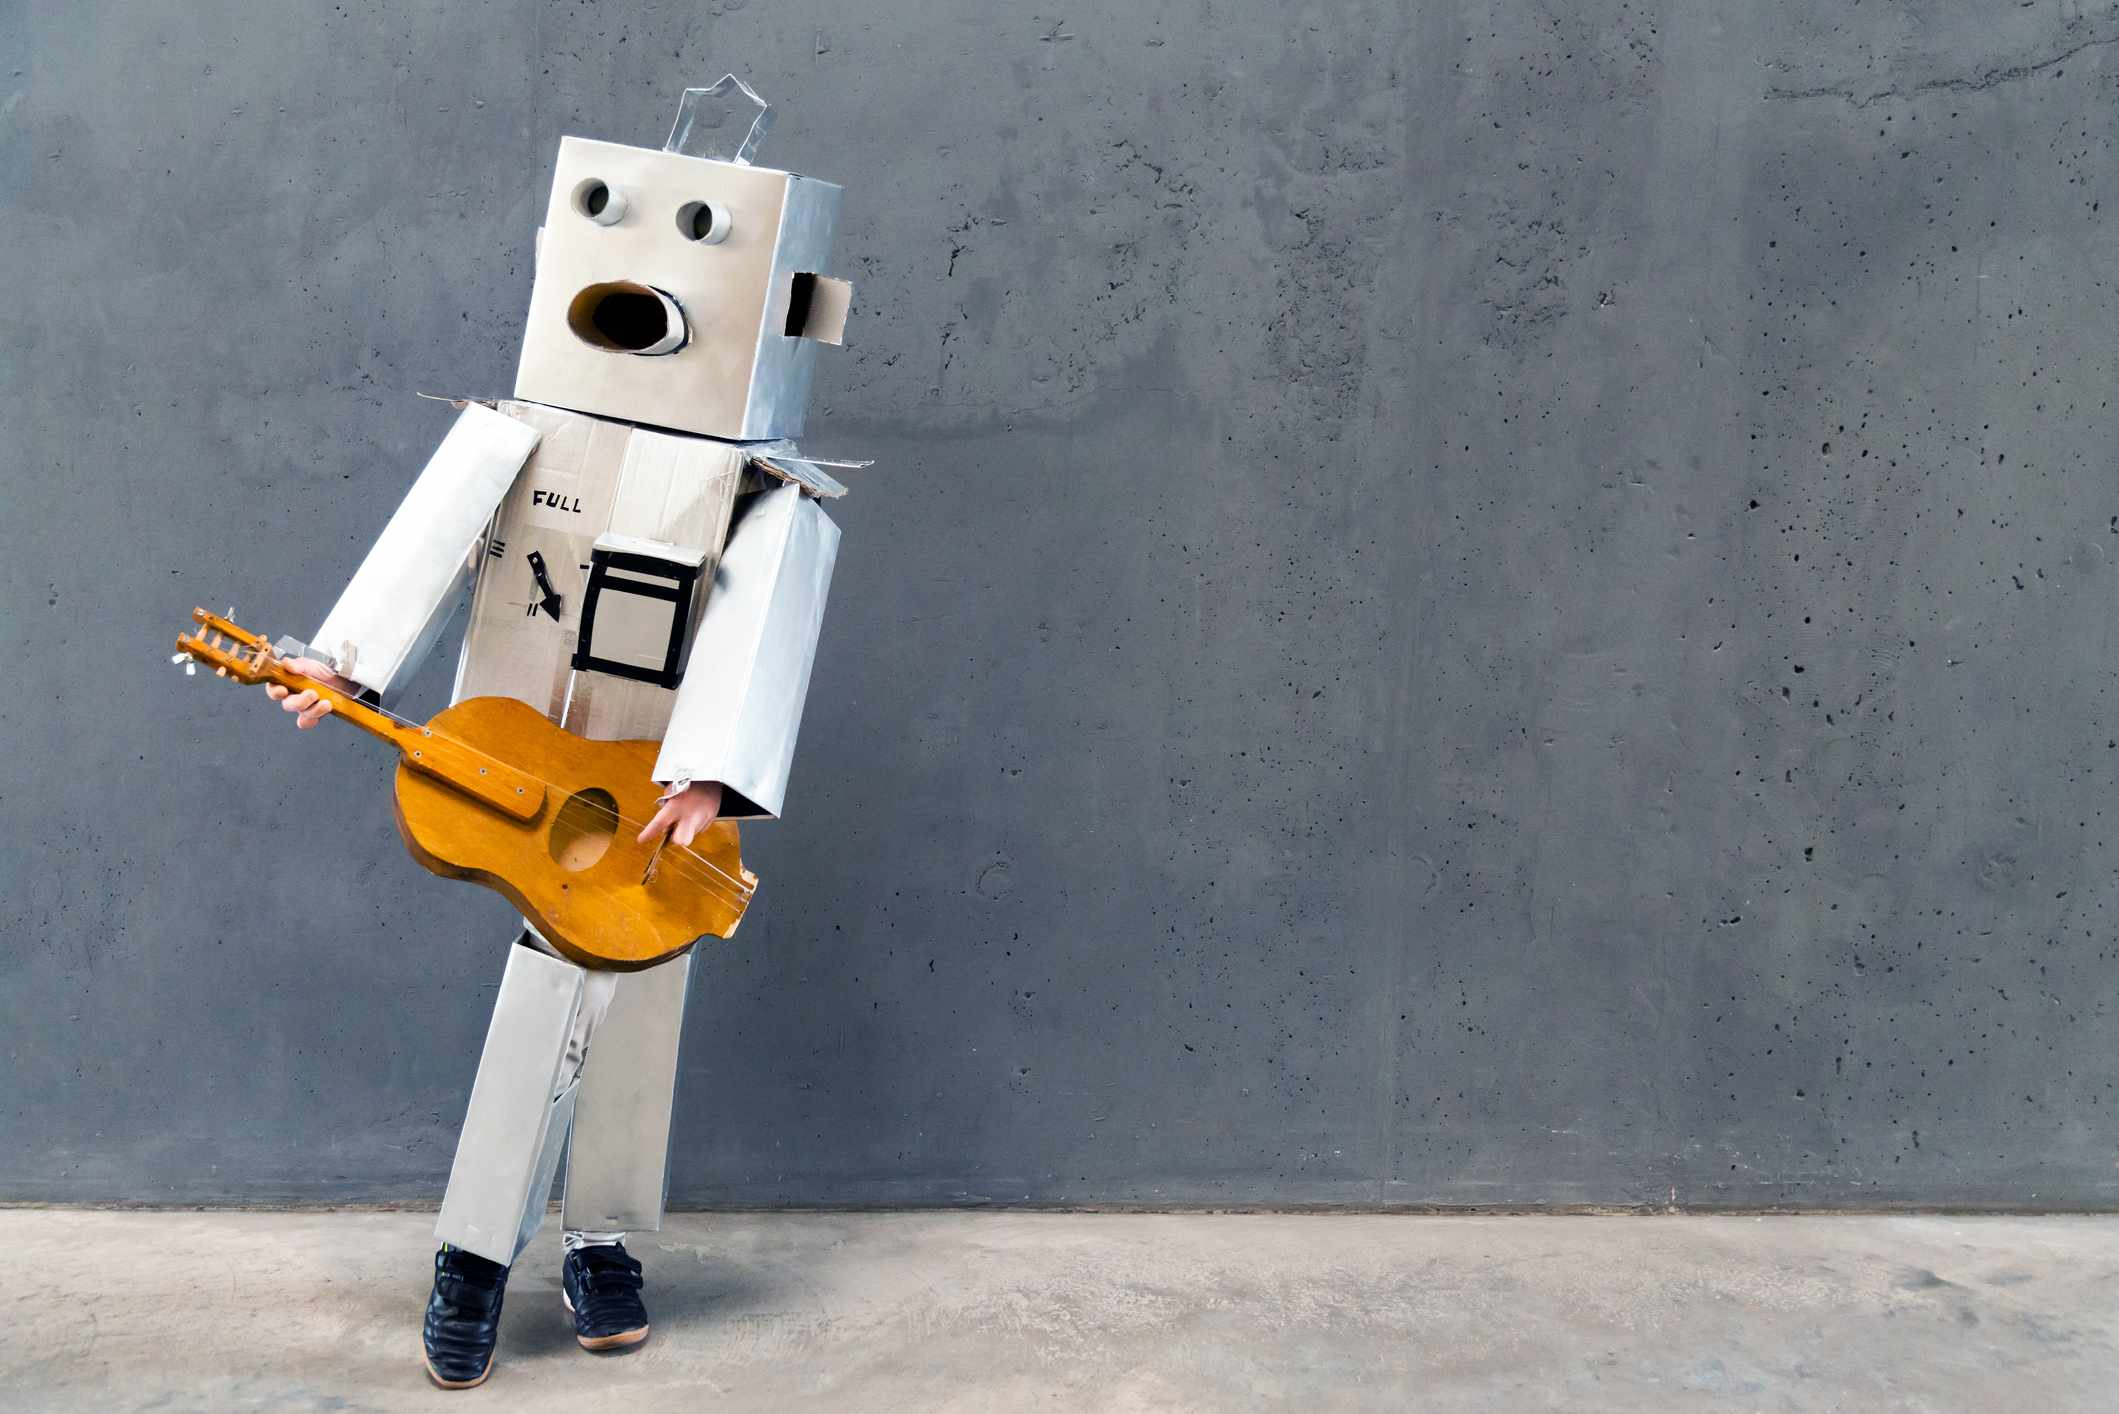 Homebuilt robot playing guitar in front of concrete wall - Artificial intelligence concept